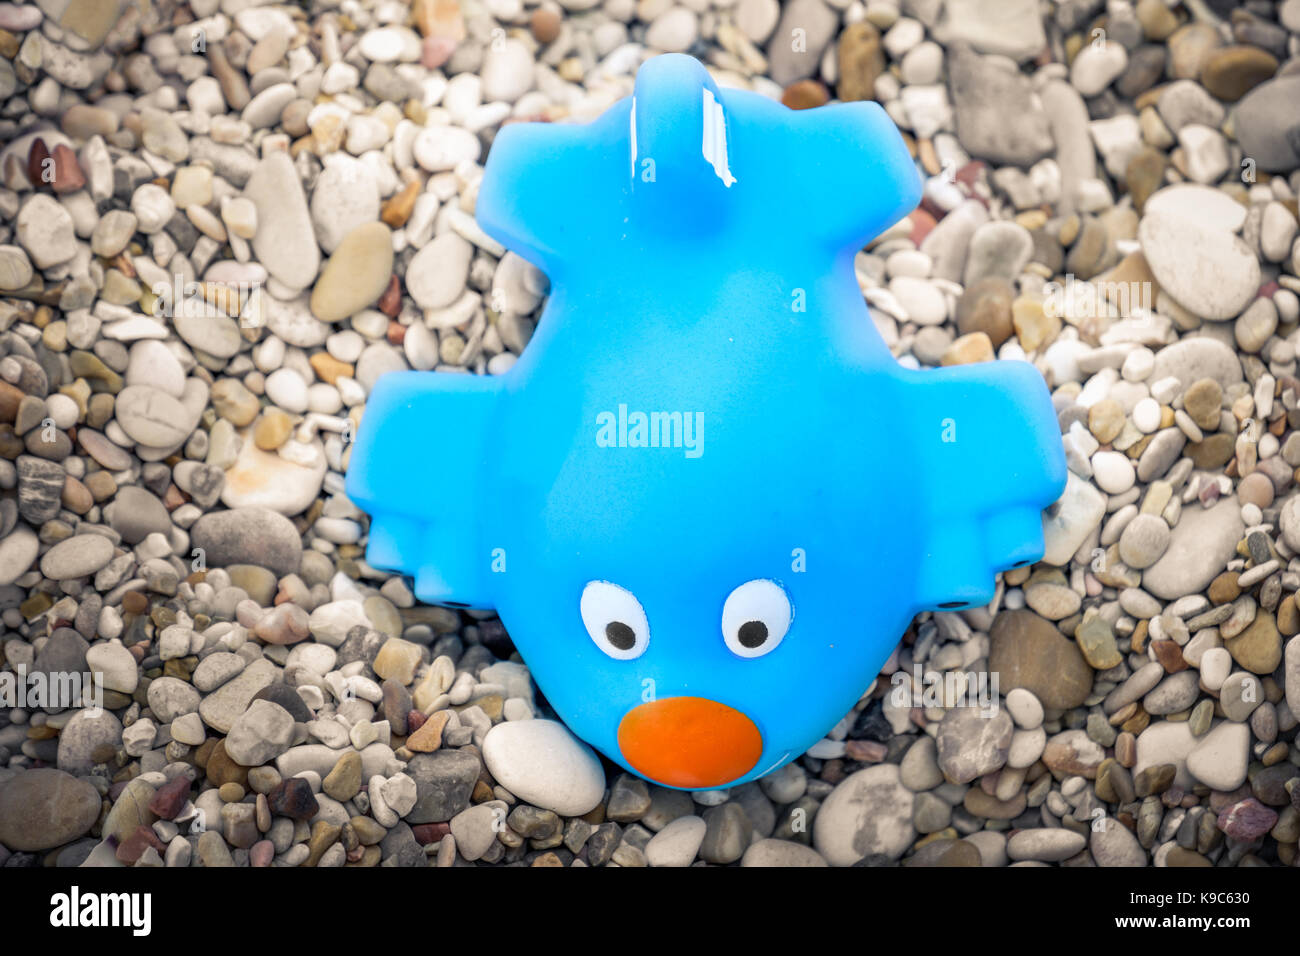 toy airplane blue toon plane - Stock Image